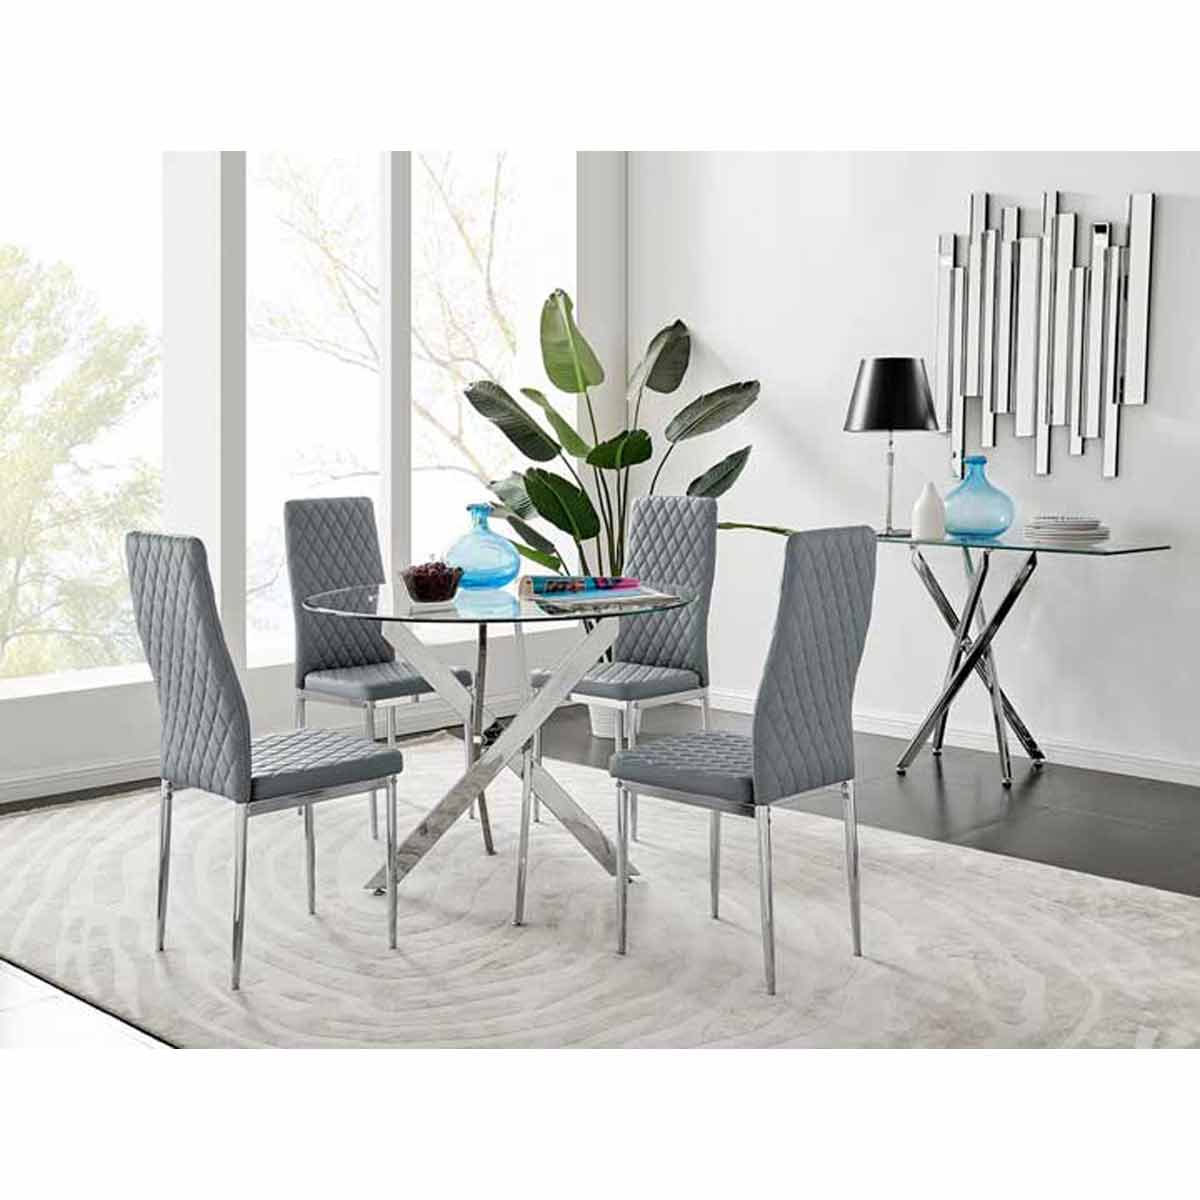 Furniture Box Novara Round Chrome Metal And Glass Dining Table And 4 Grey Milan Dining Chairs Set